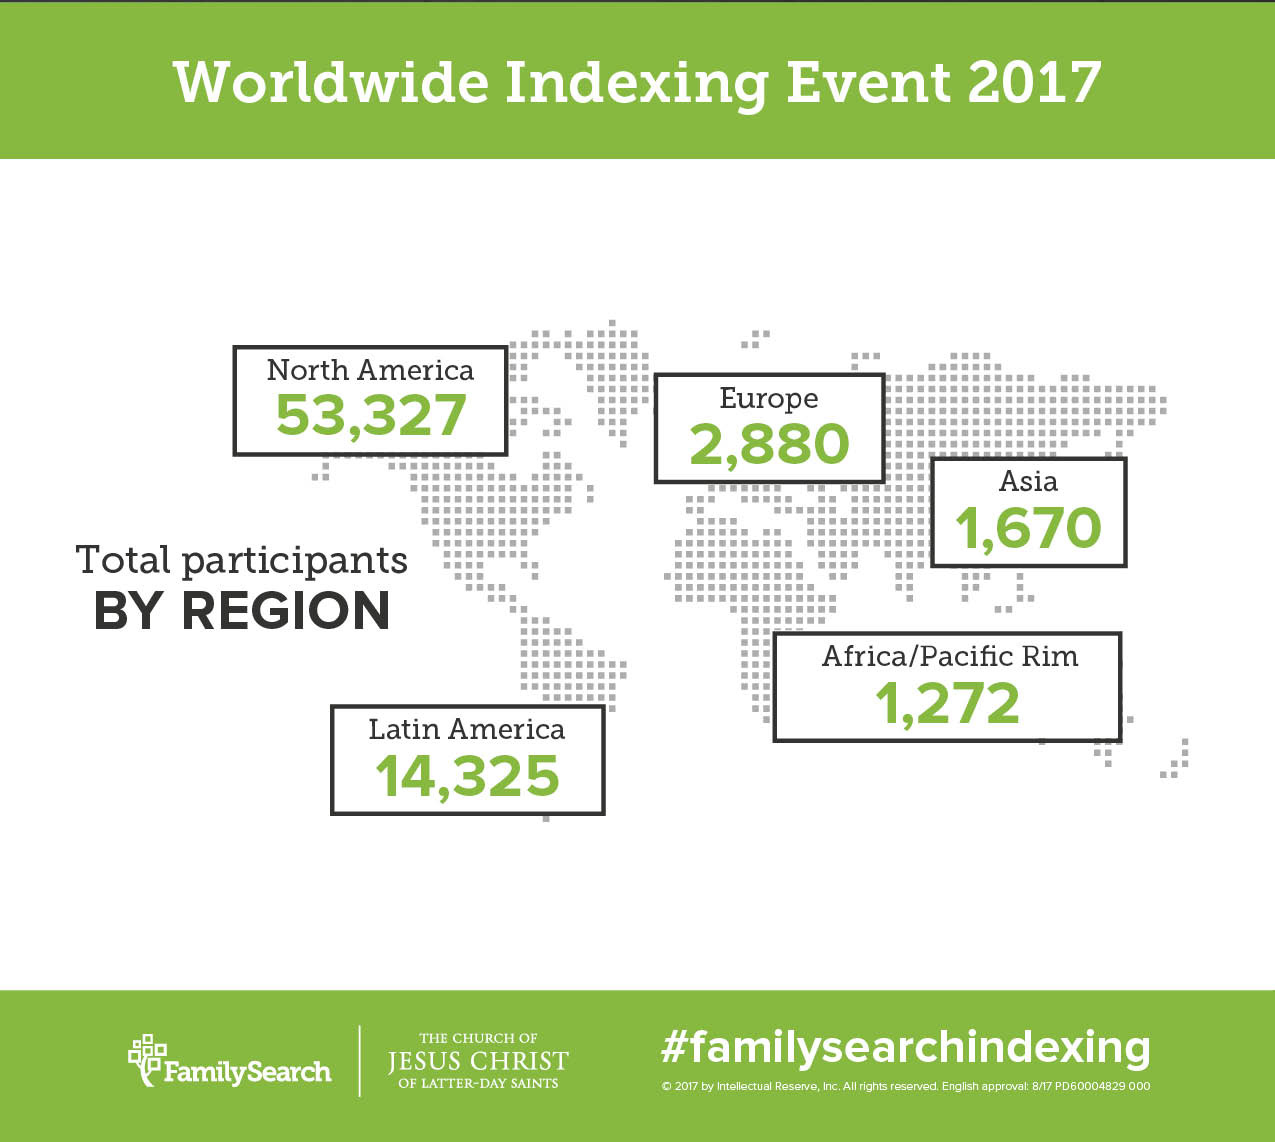 People around the world indexed with FamilySearch during the Worldwide Indexing Event.